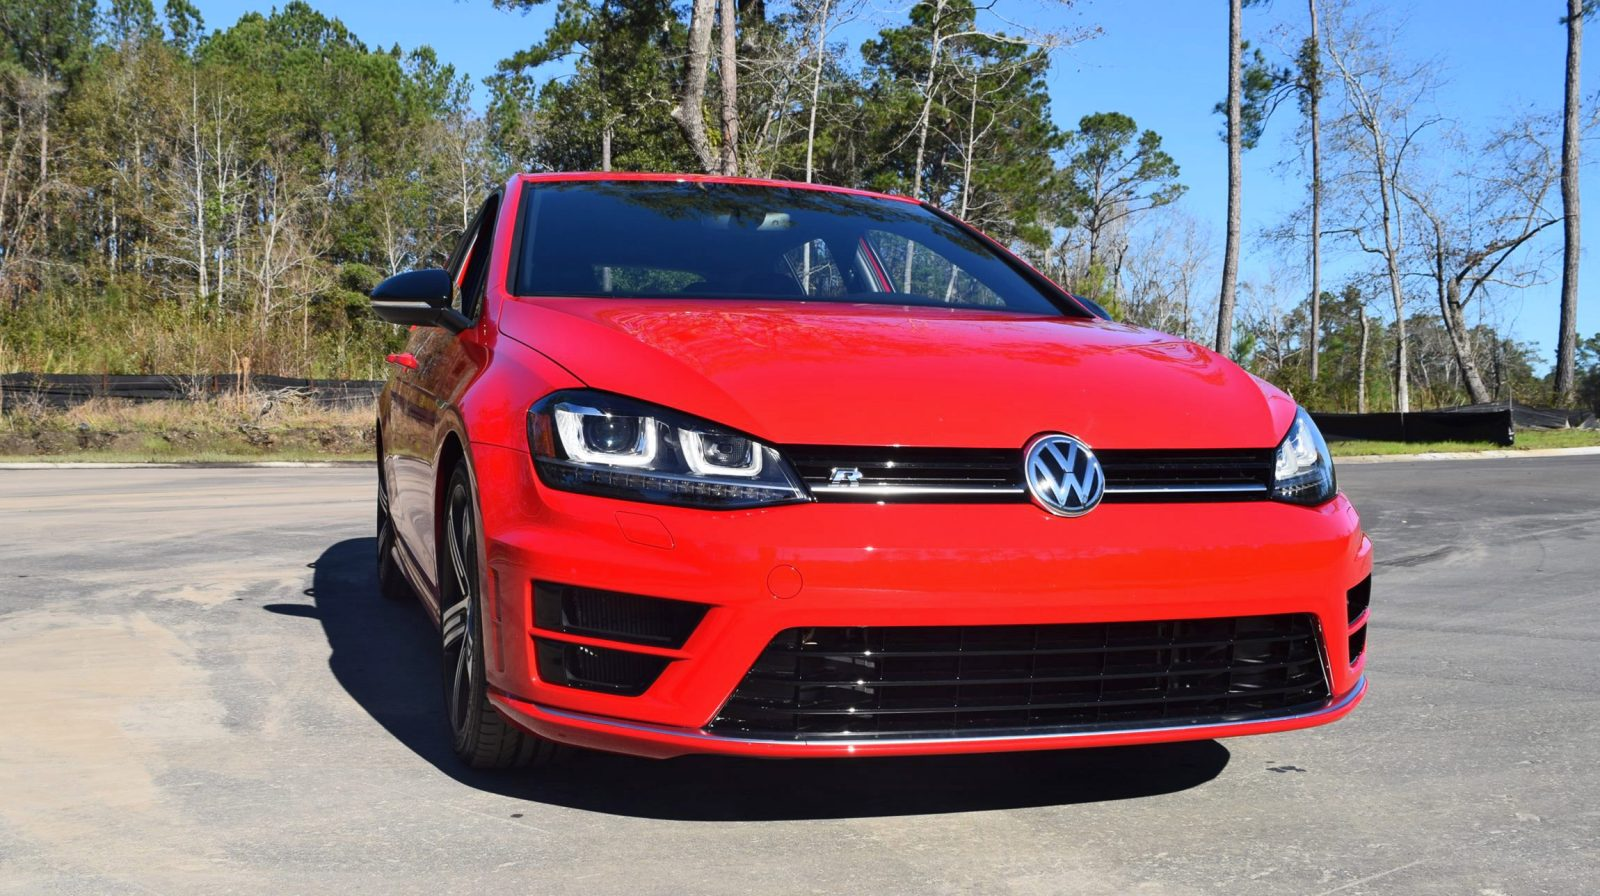 2017 vw golf r review 16. Black Bedroom Furniture Sets. Home Design Ideas